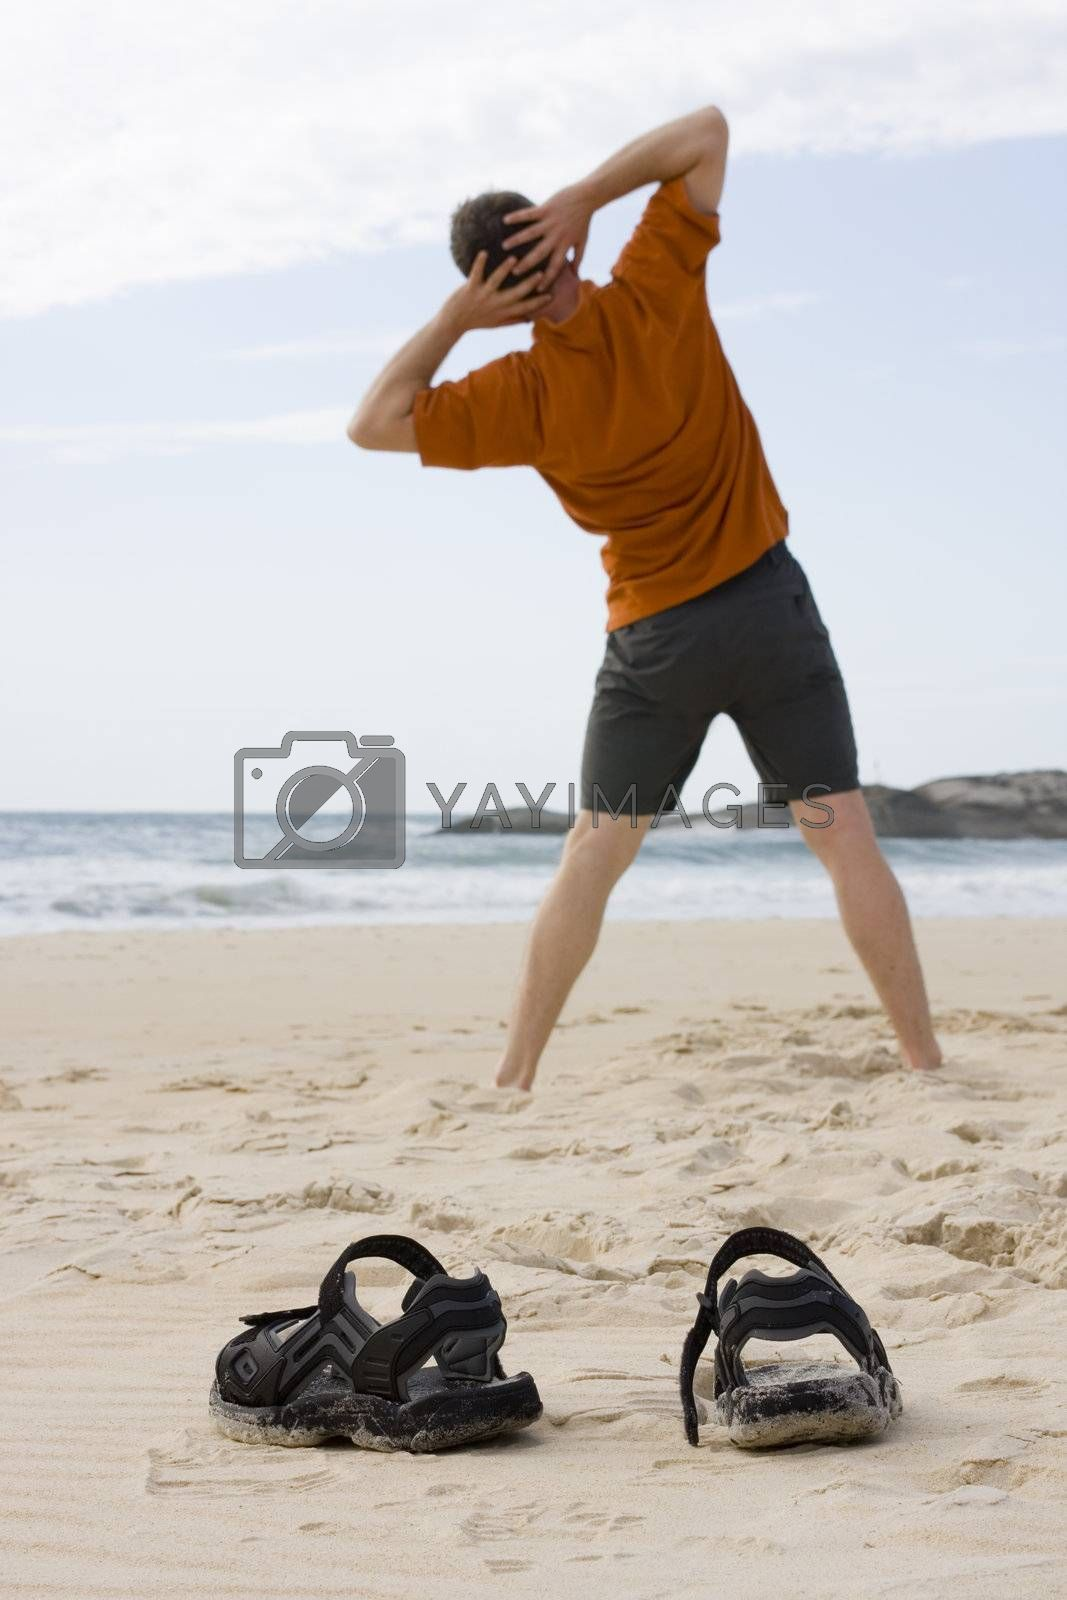 Man doing gymnastics on the beach. Focus on his sandals in the foreground